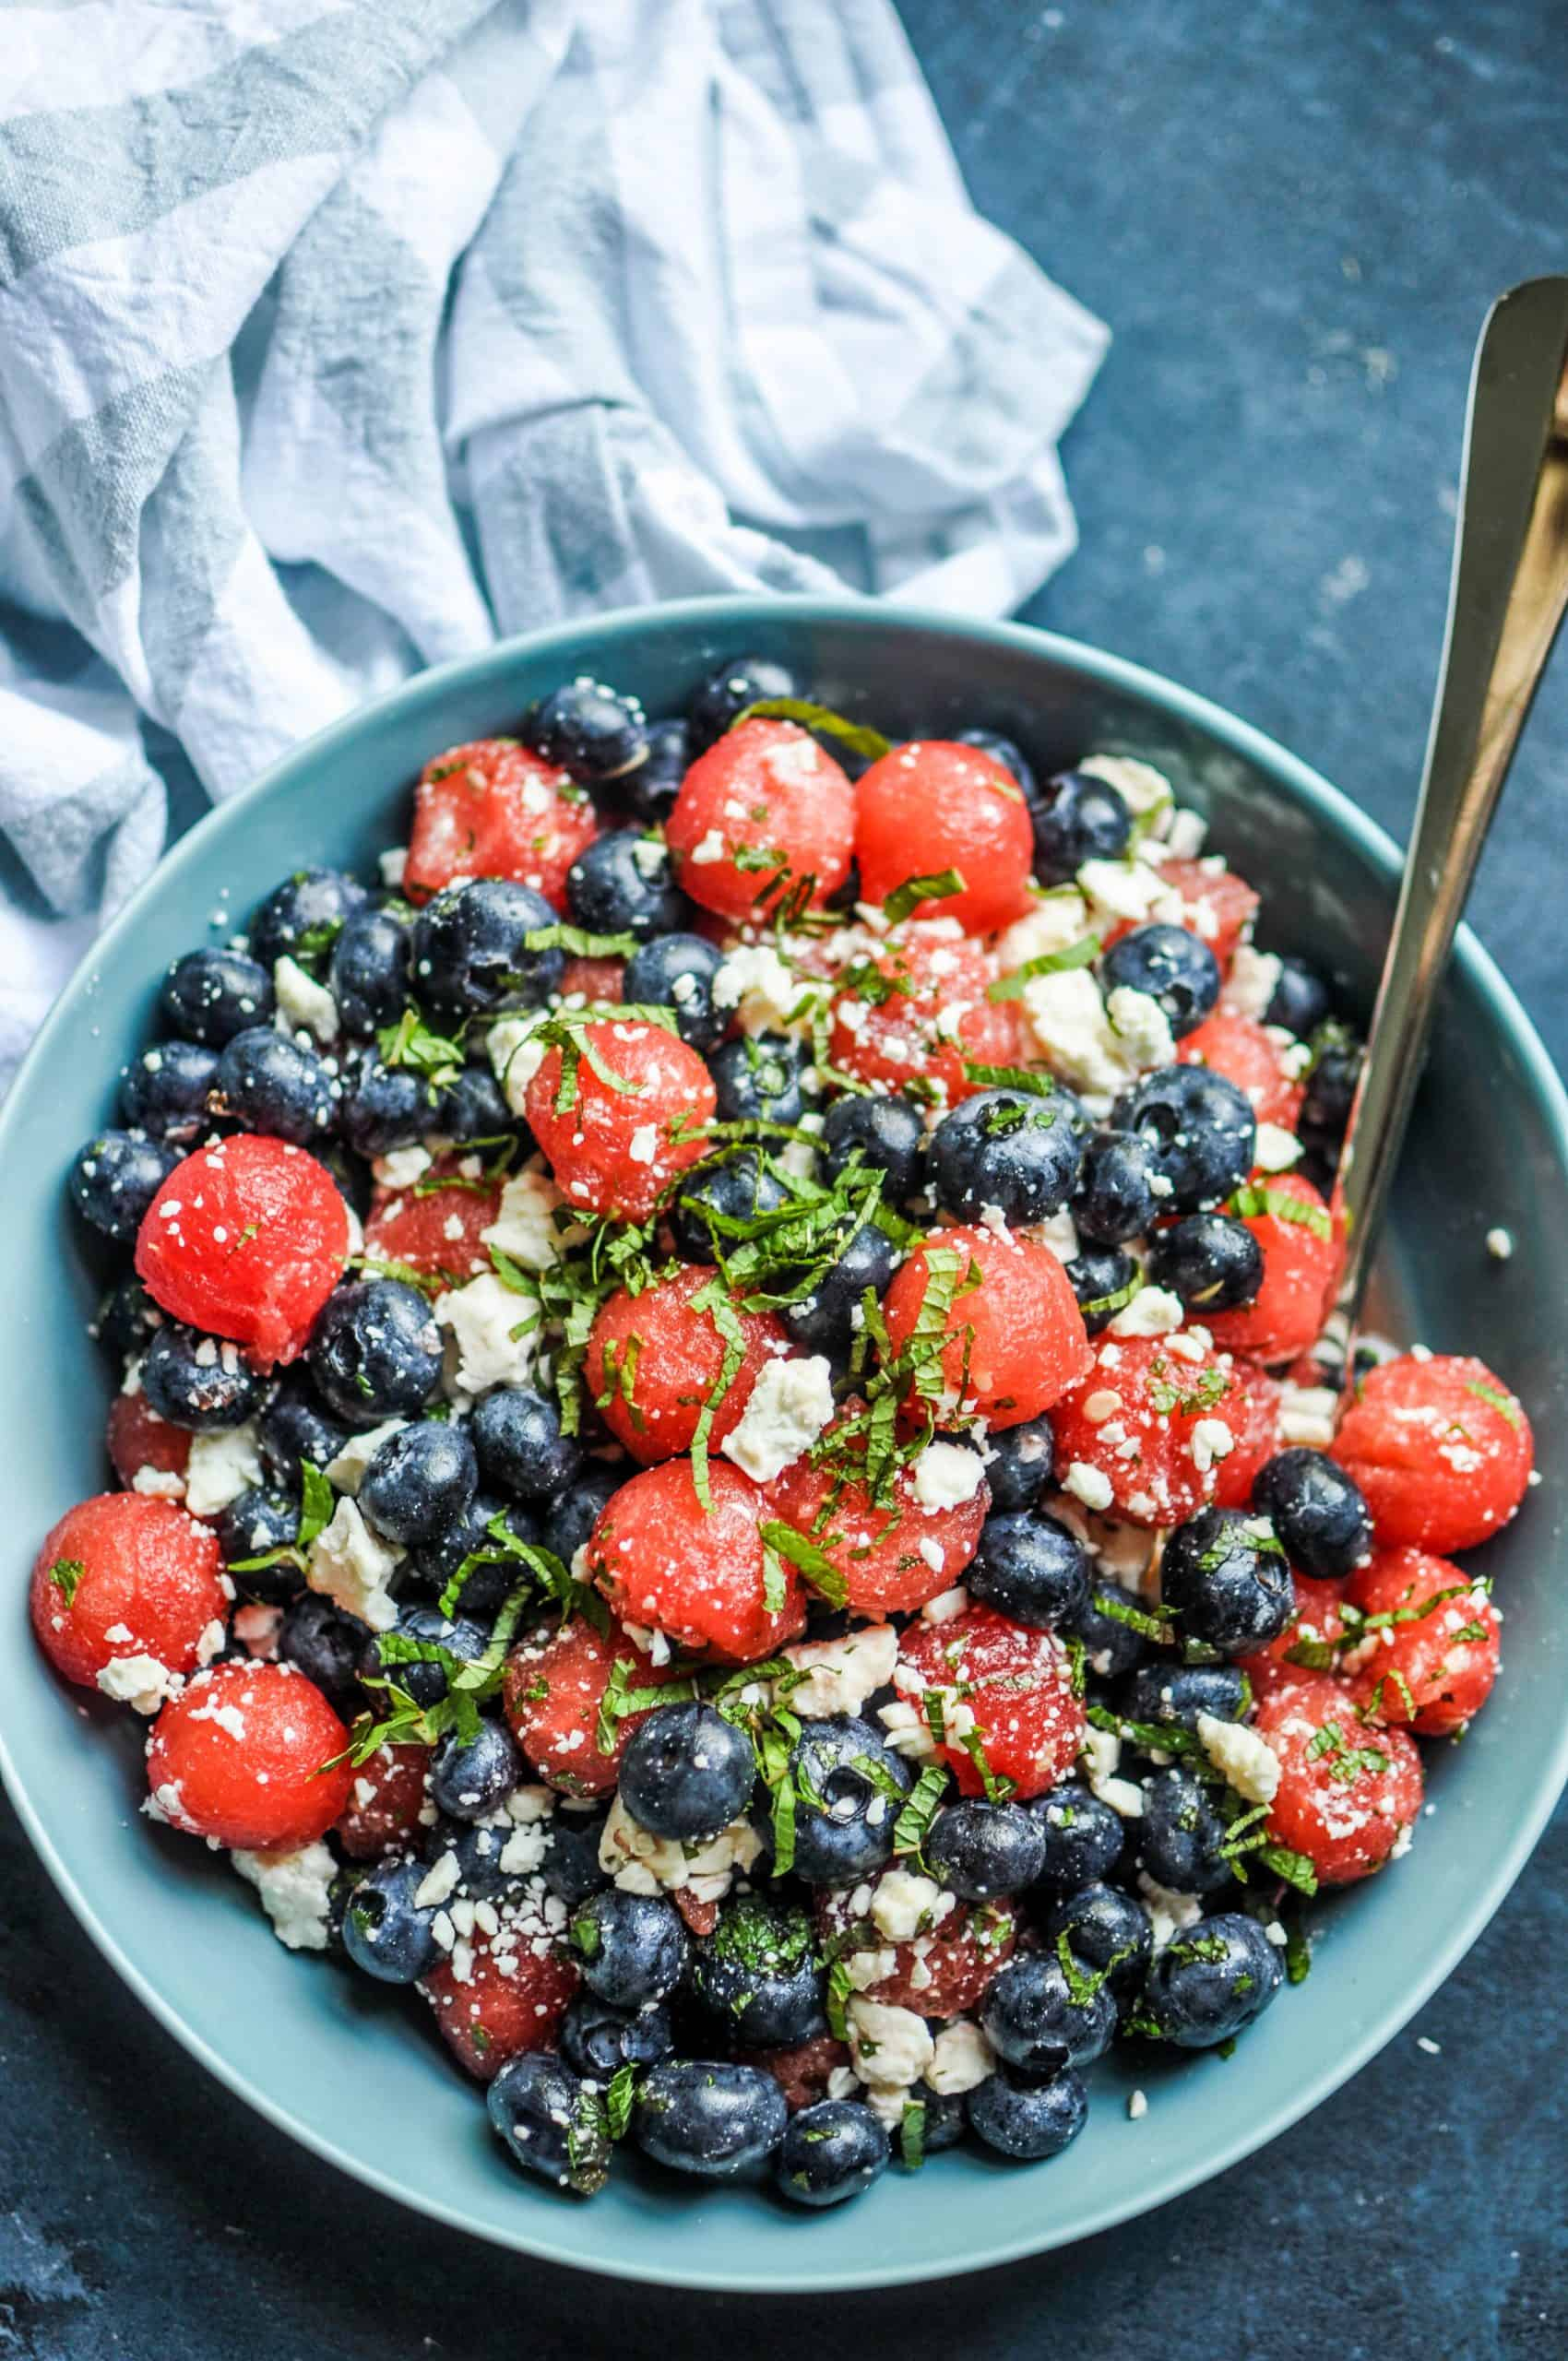 Watermelon, Blueberry, and Feta Salad on a grey plate